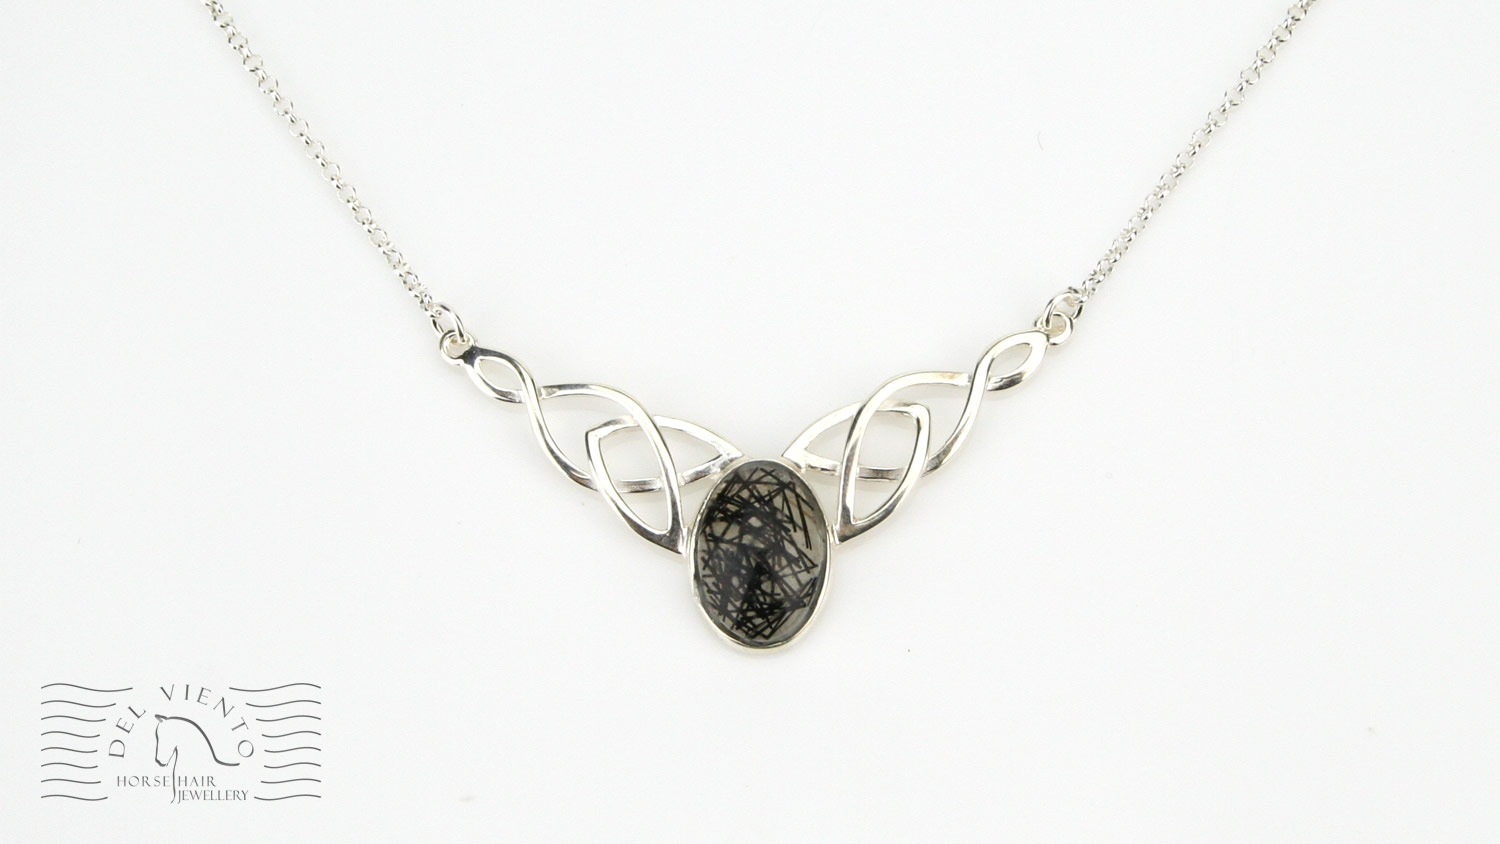 N21CAV Sterling Silver Ornate Oval Pendant